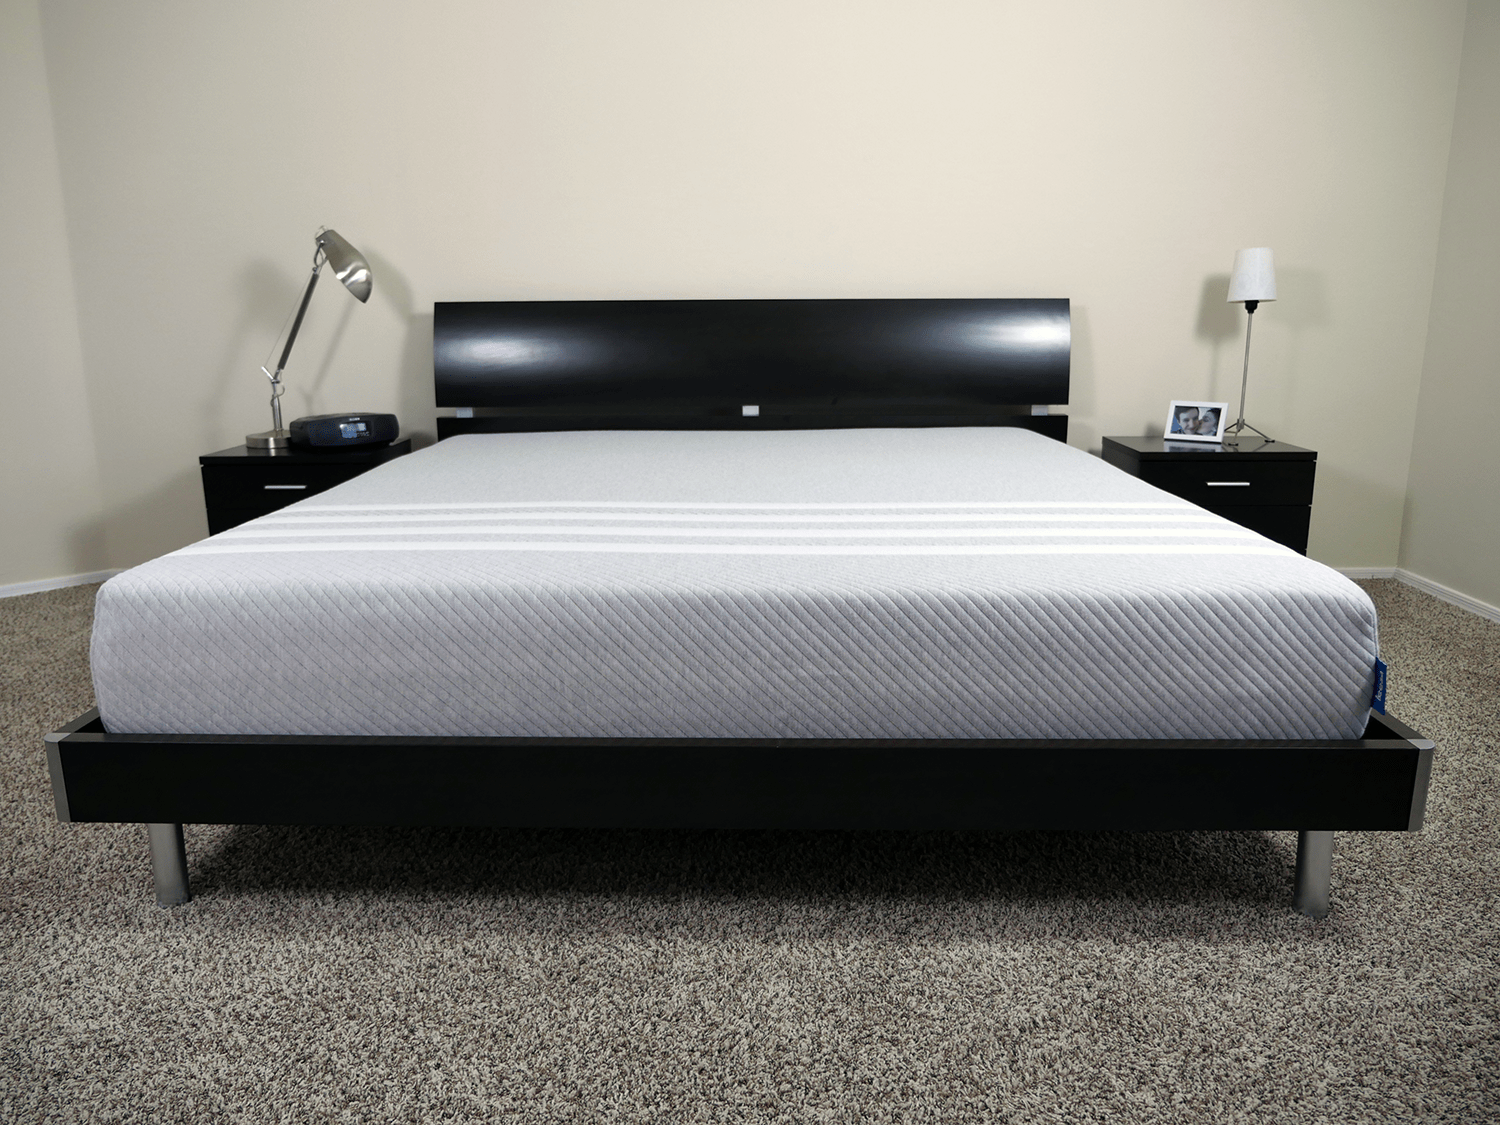 Leesa vs purple mattress review sleepopolis for Brooklyn bedding vs tuft and needle